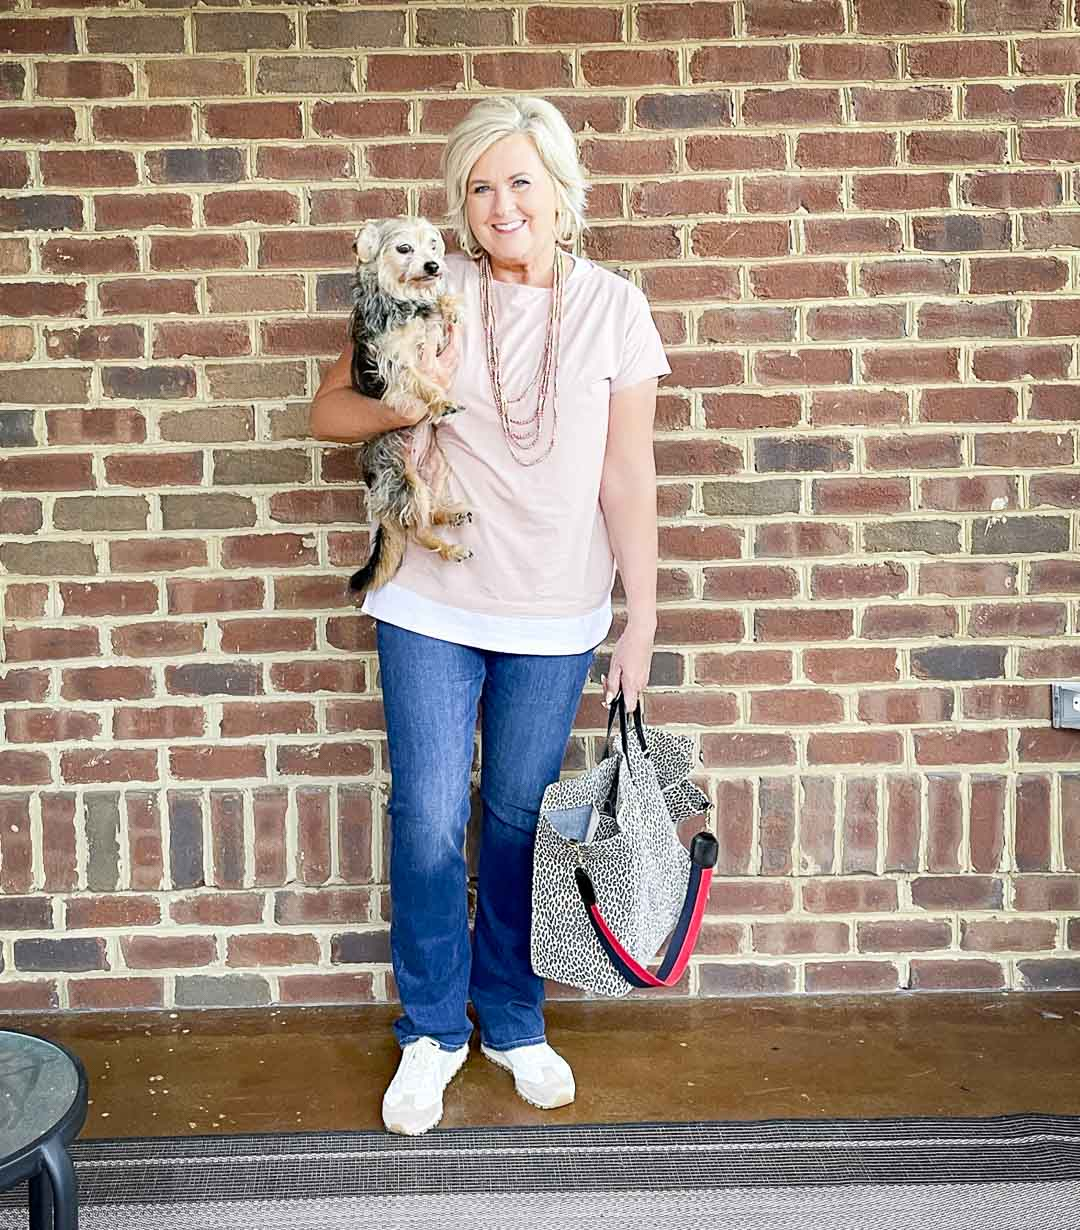 Over 40 Fashion Blogger, Tania Stephens, is dressed in blush pink, a white tank tunic, bootcut jeans, and carrying a suede animal print tote